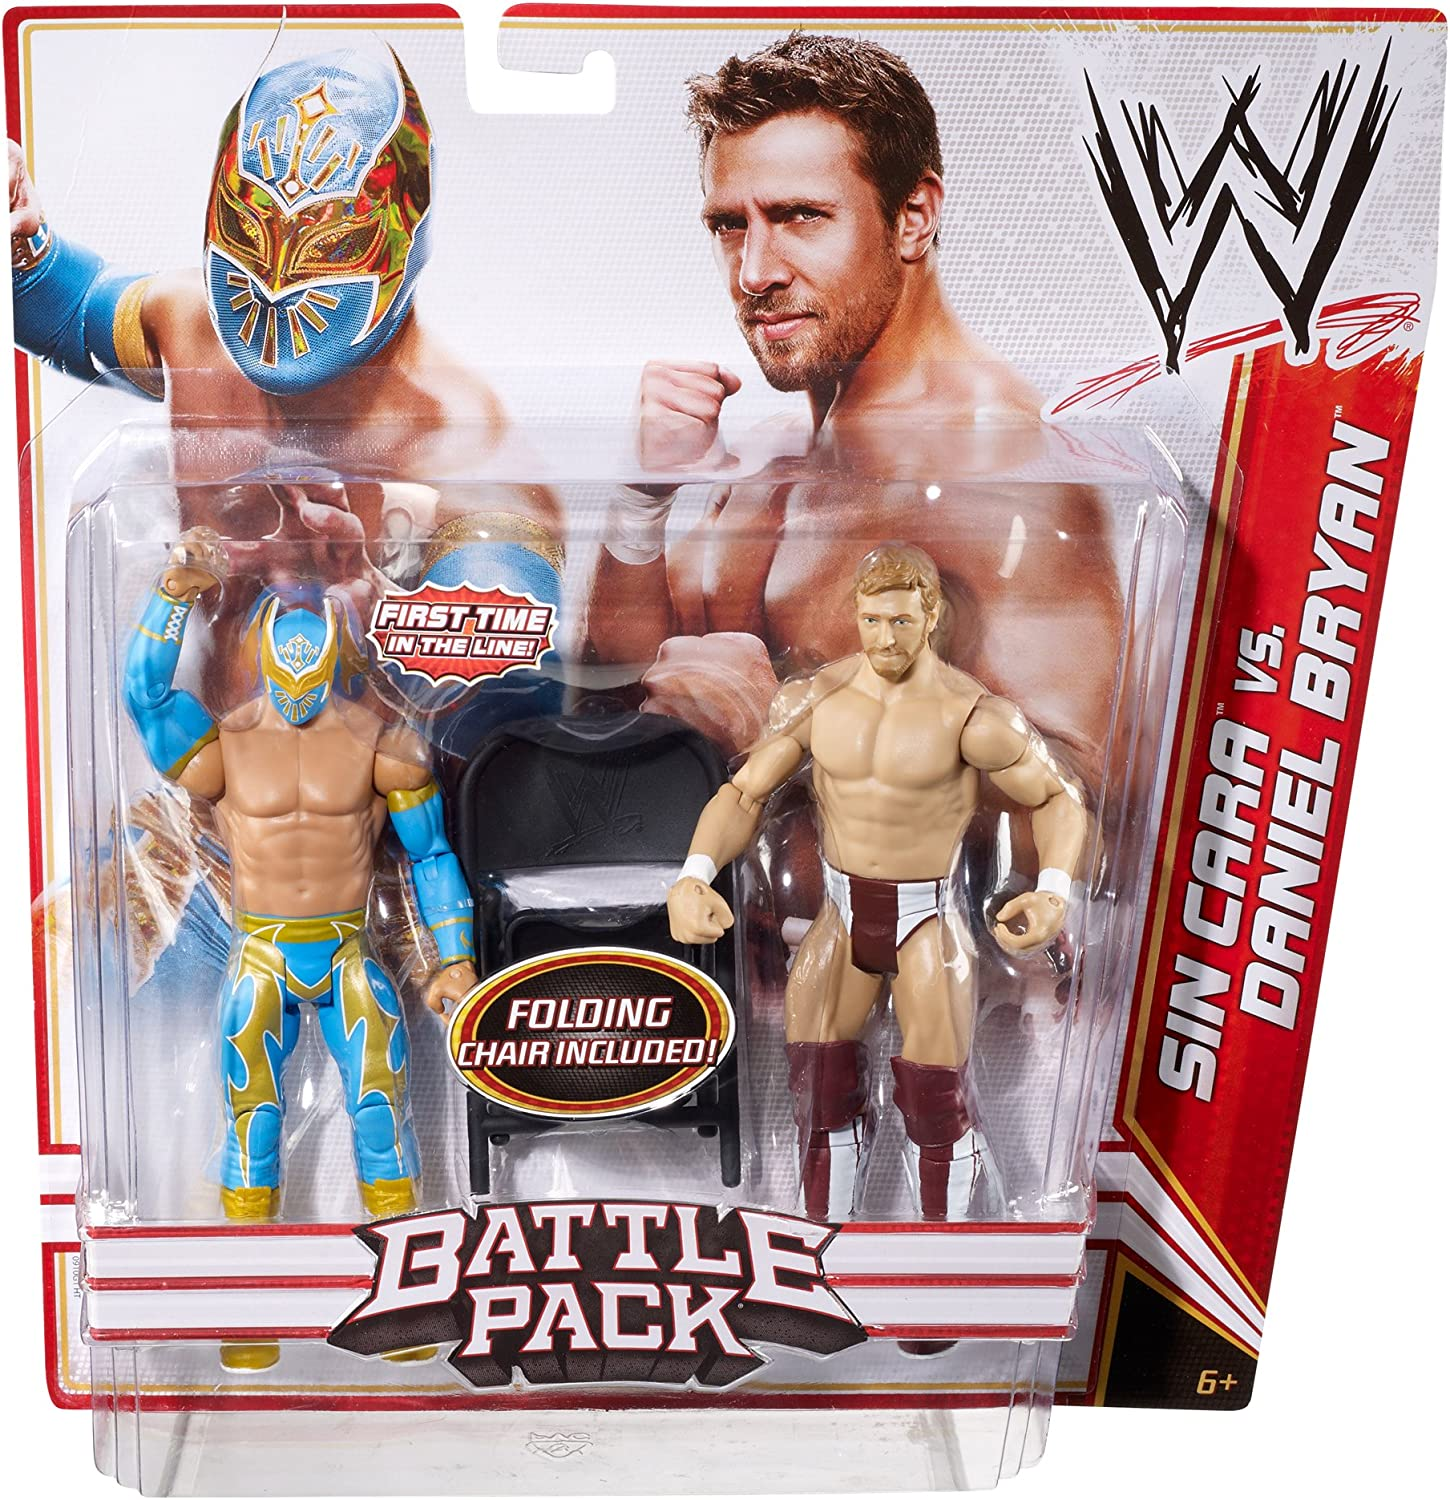 Sin Cara and Daniel Bryan - Battle Pack Best of 2012 - WWE Action Figure by Mattel: Amazon.es: Juguetes y juegos